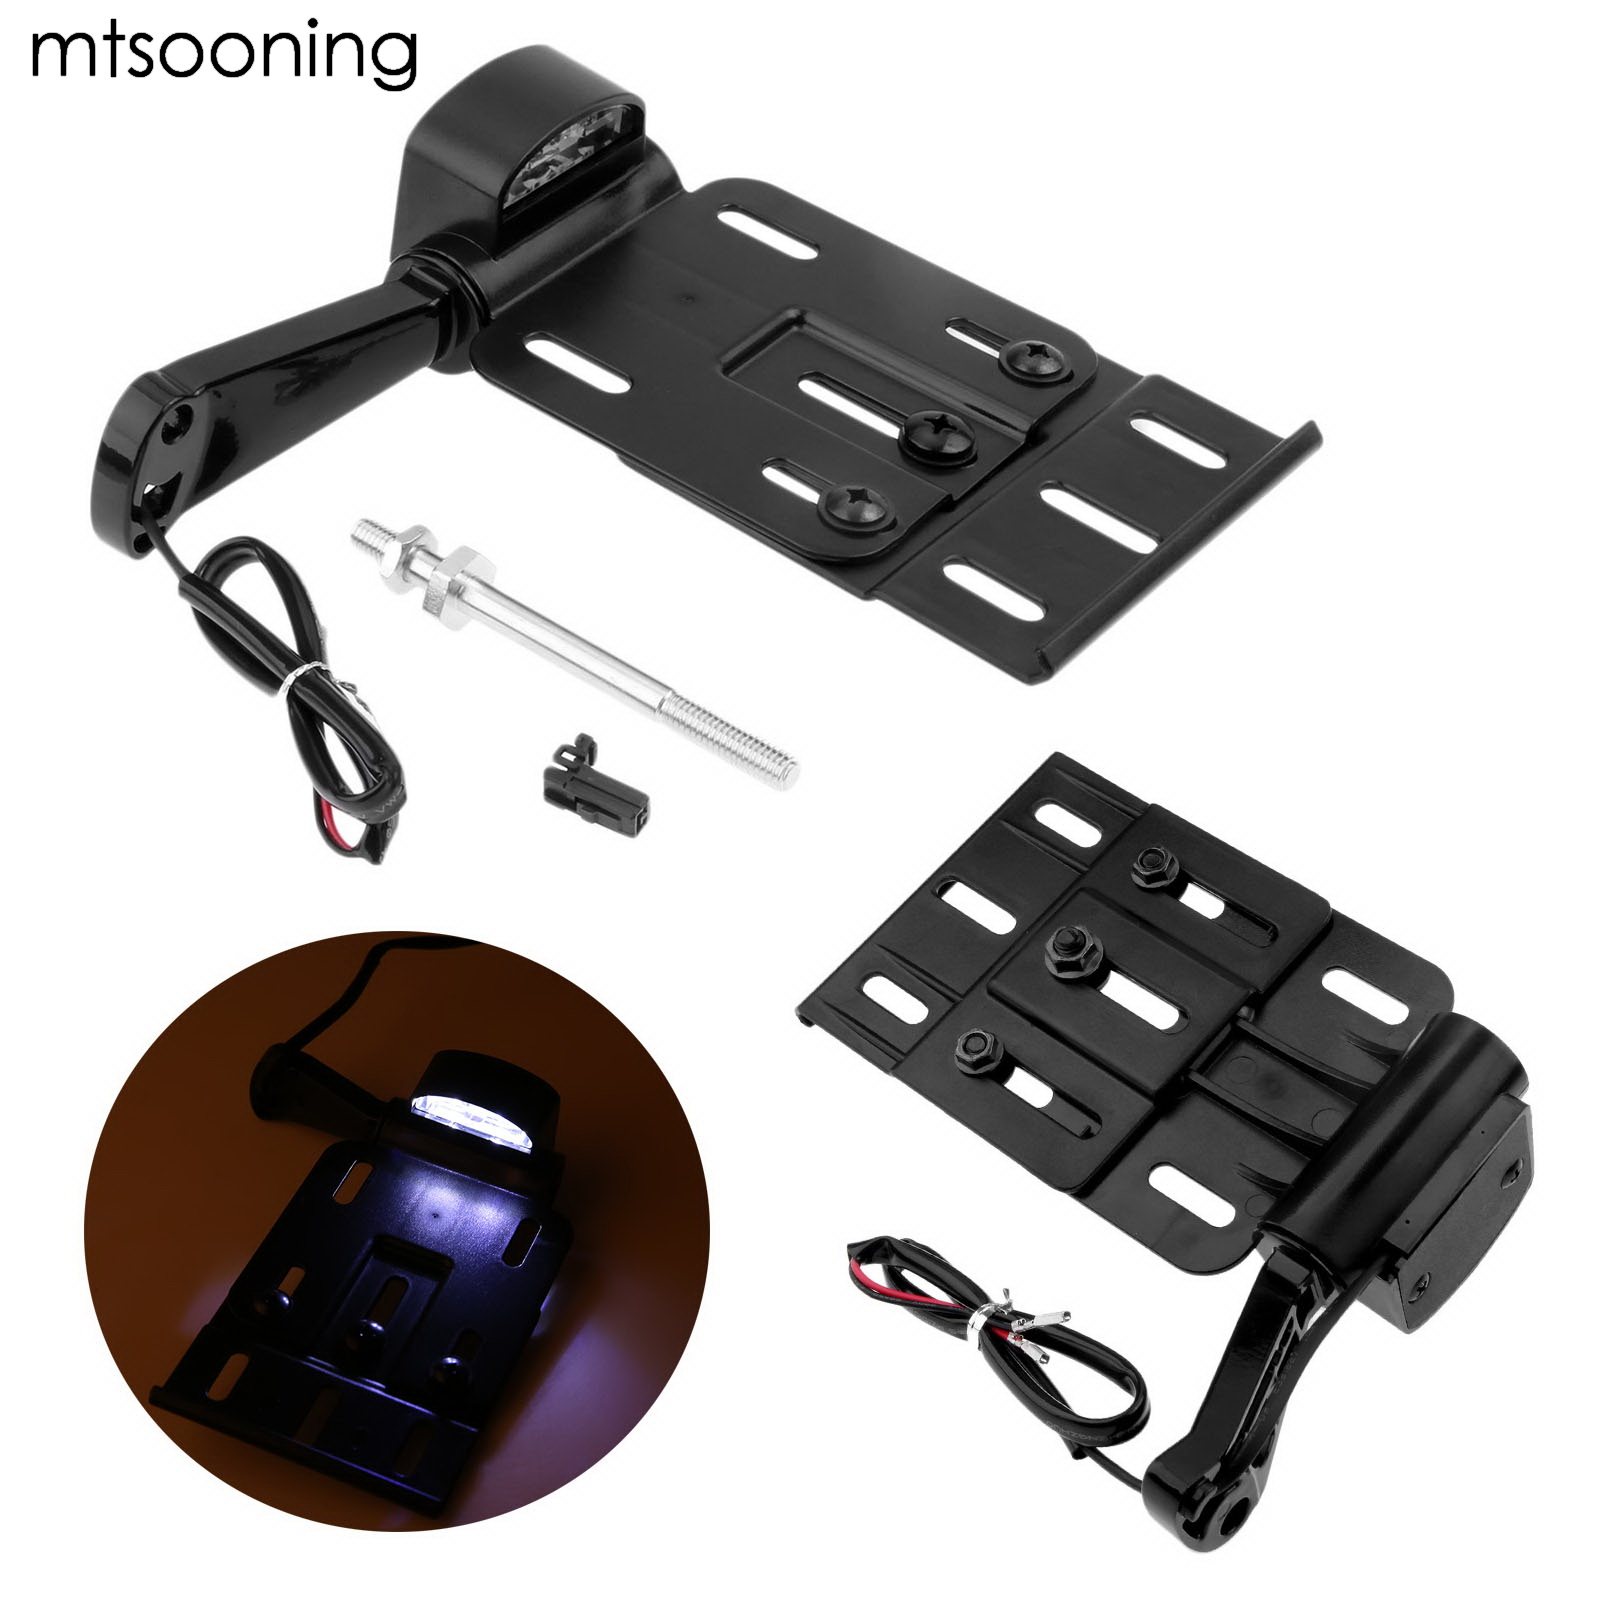 mtsooning Motorcycle Folding Side Mount LED License Plate Lights Frame Holder Black For Harley Sportster 883 1200 48 2004-2016 motorcycle tail tidy fender eliminator registration license plate holder bracket led light for ducati panigale 899 free shipping